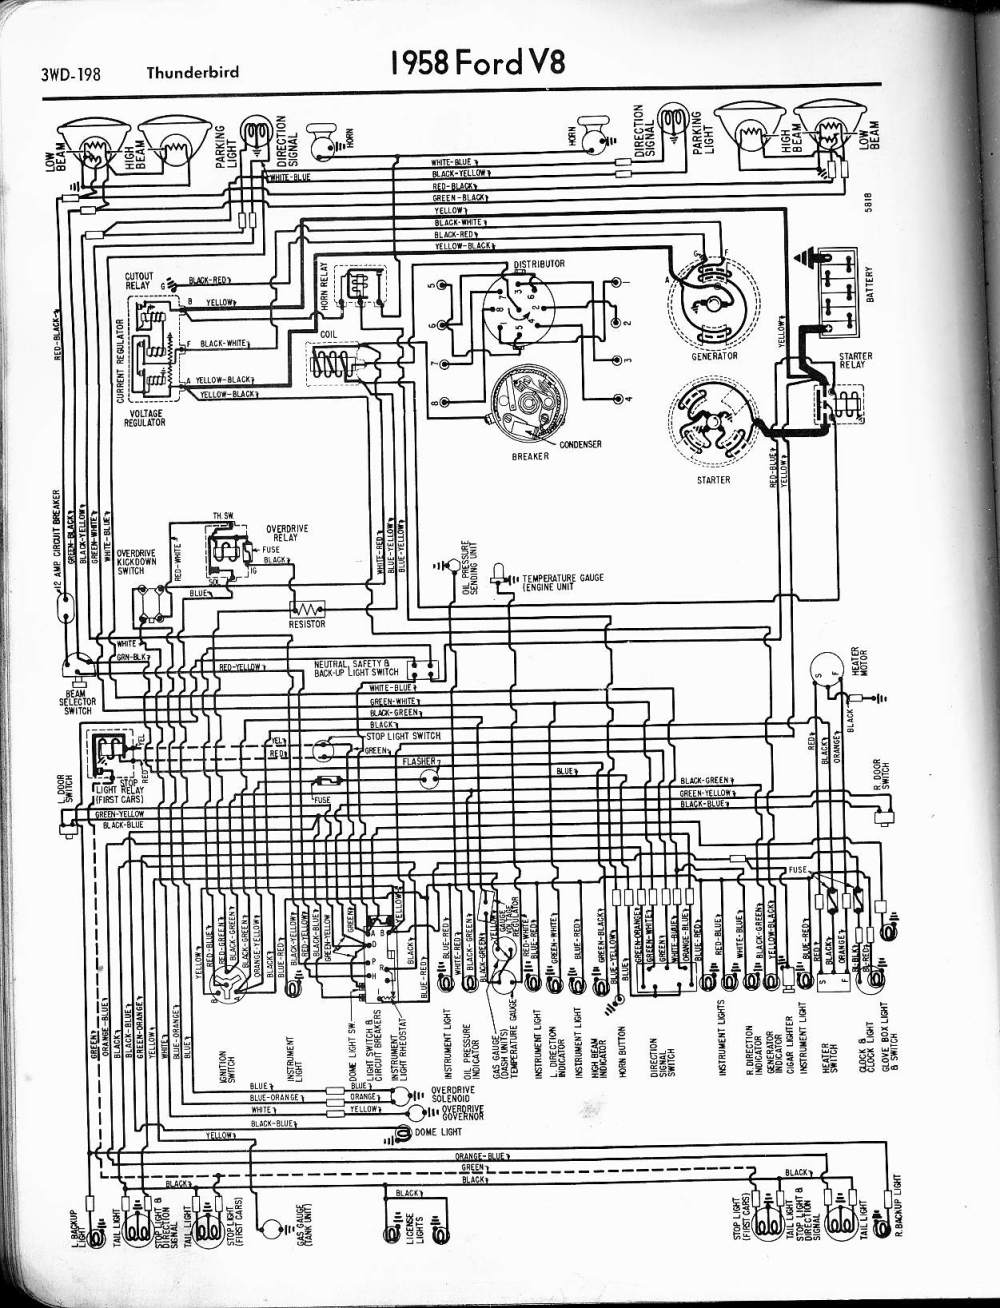 medium resolution of 1955 ford radio wiring wiring diagram article review1955 ford radio wiring wiring diagram55 ford radio schematic